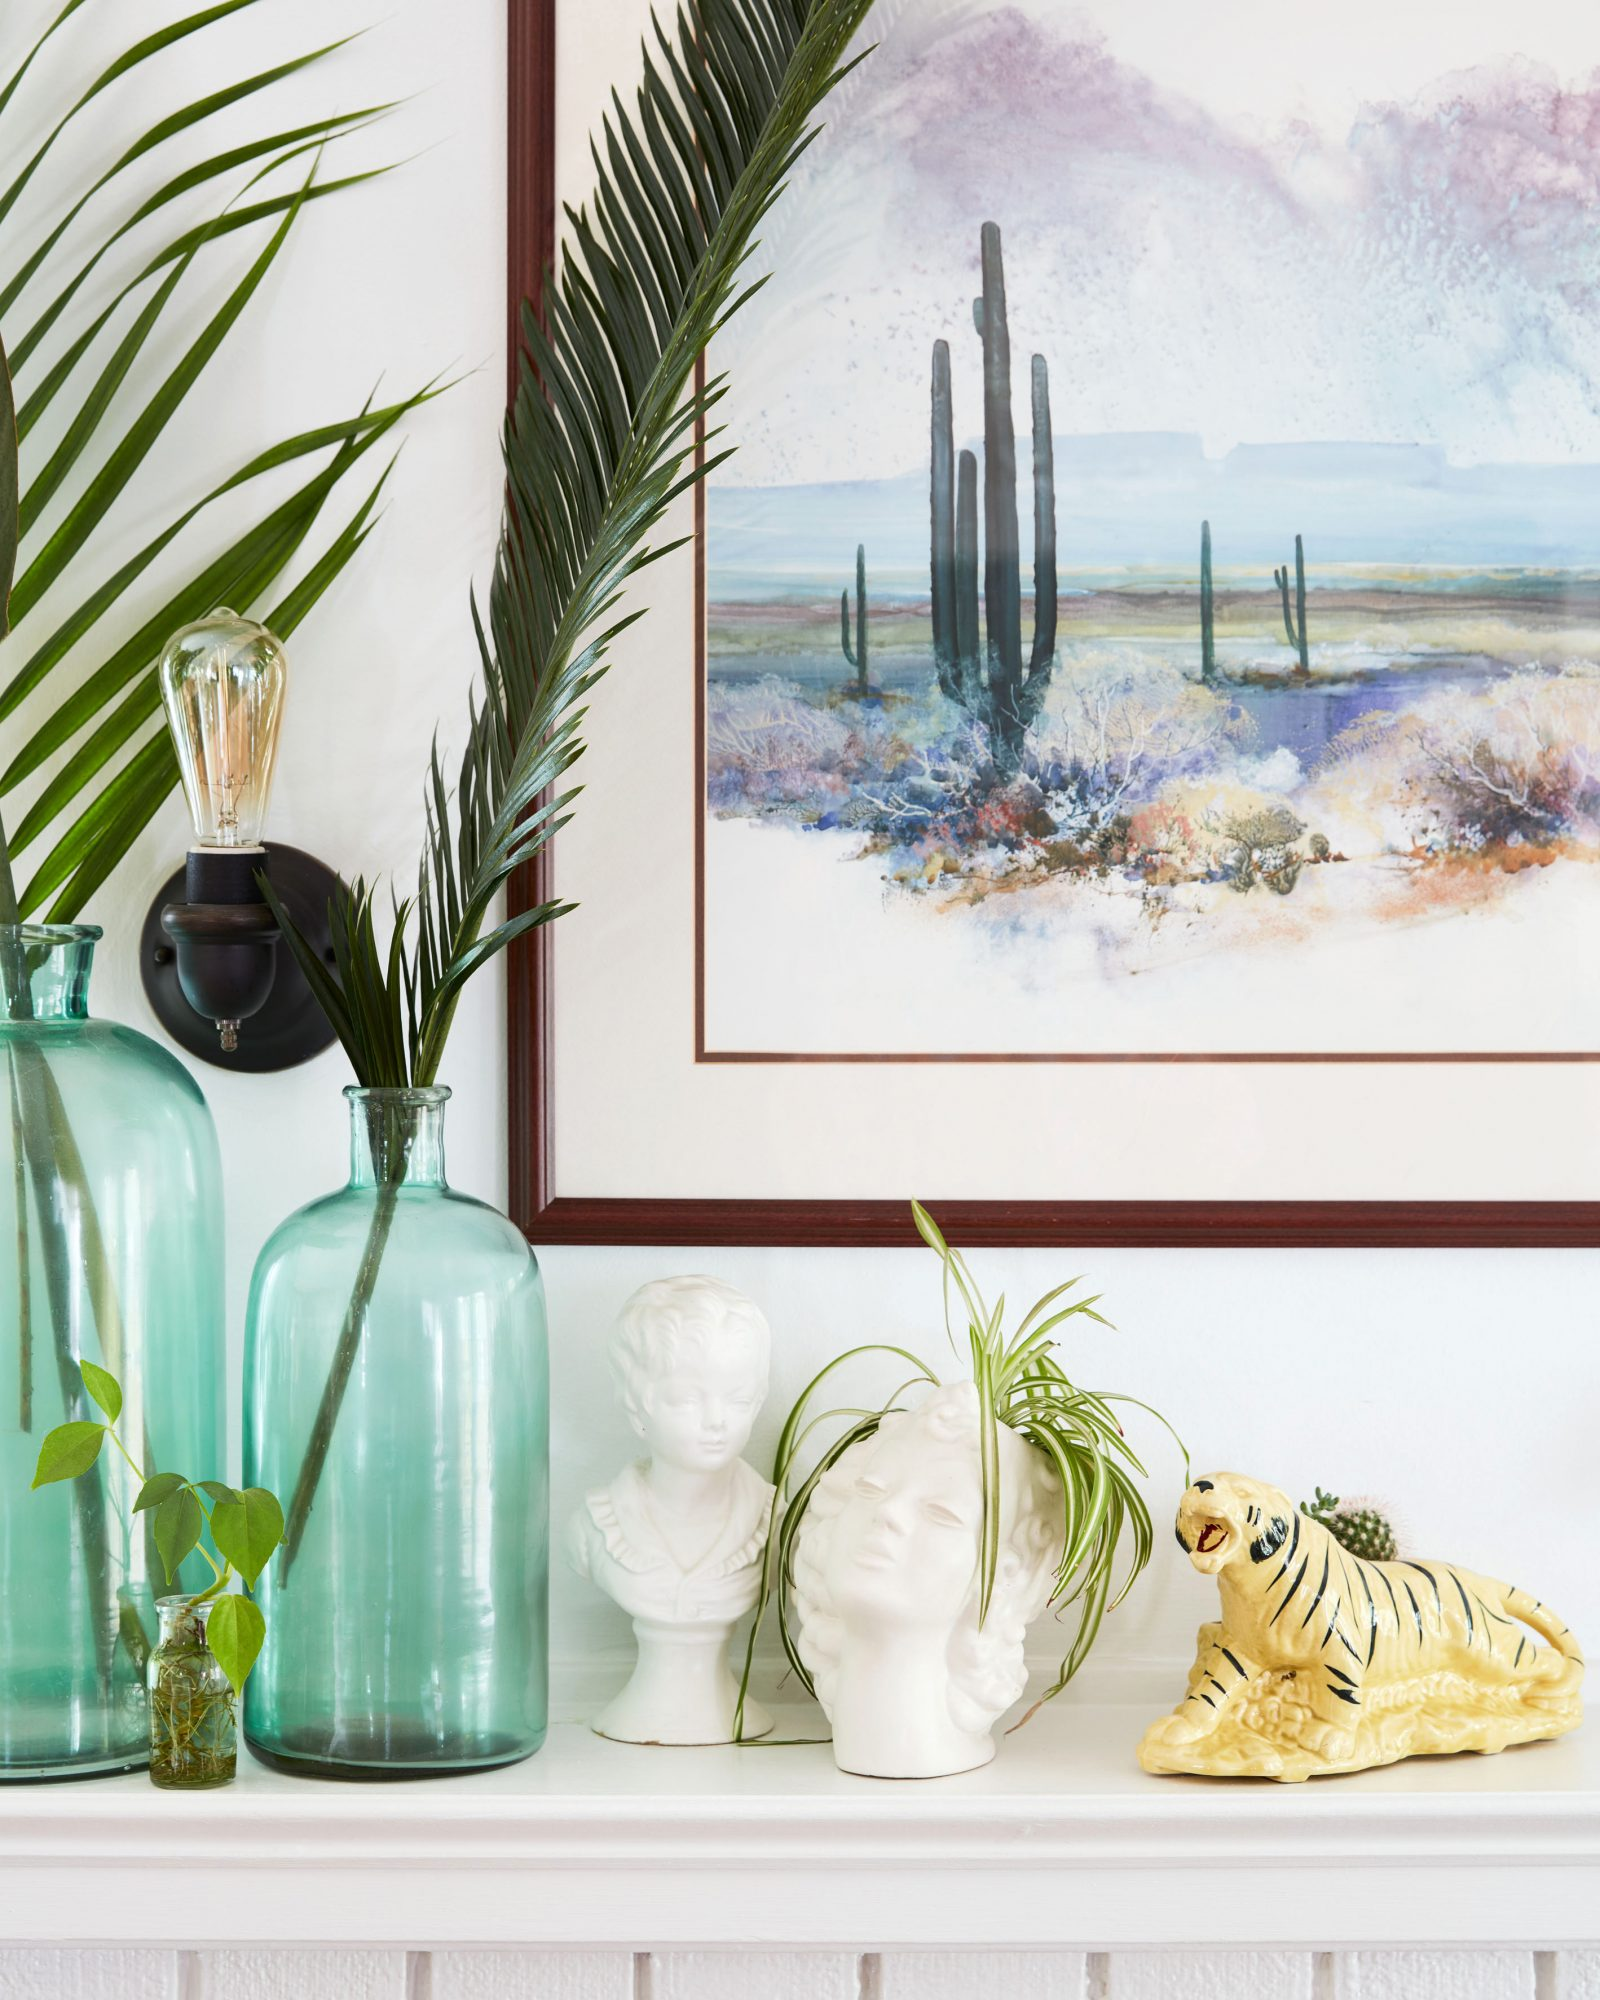 mantle vases and paintings